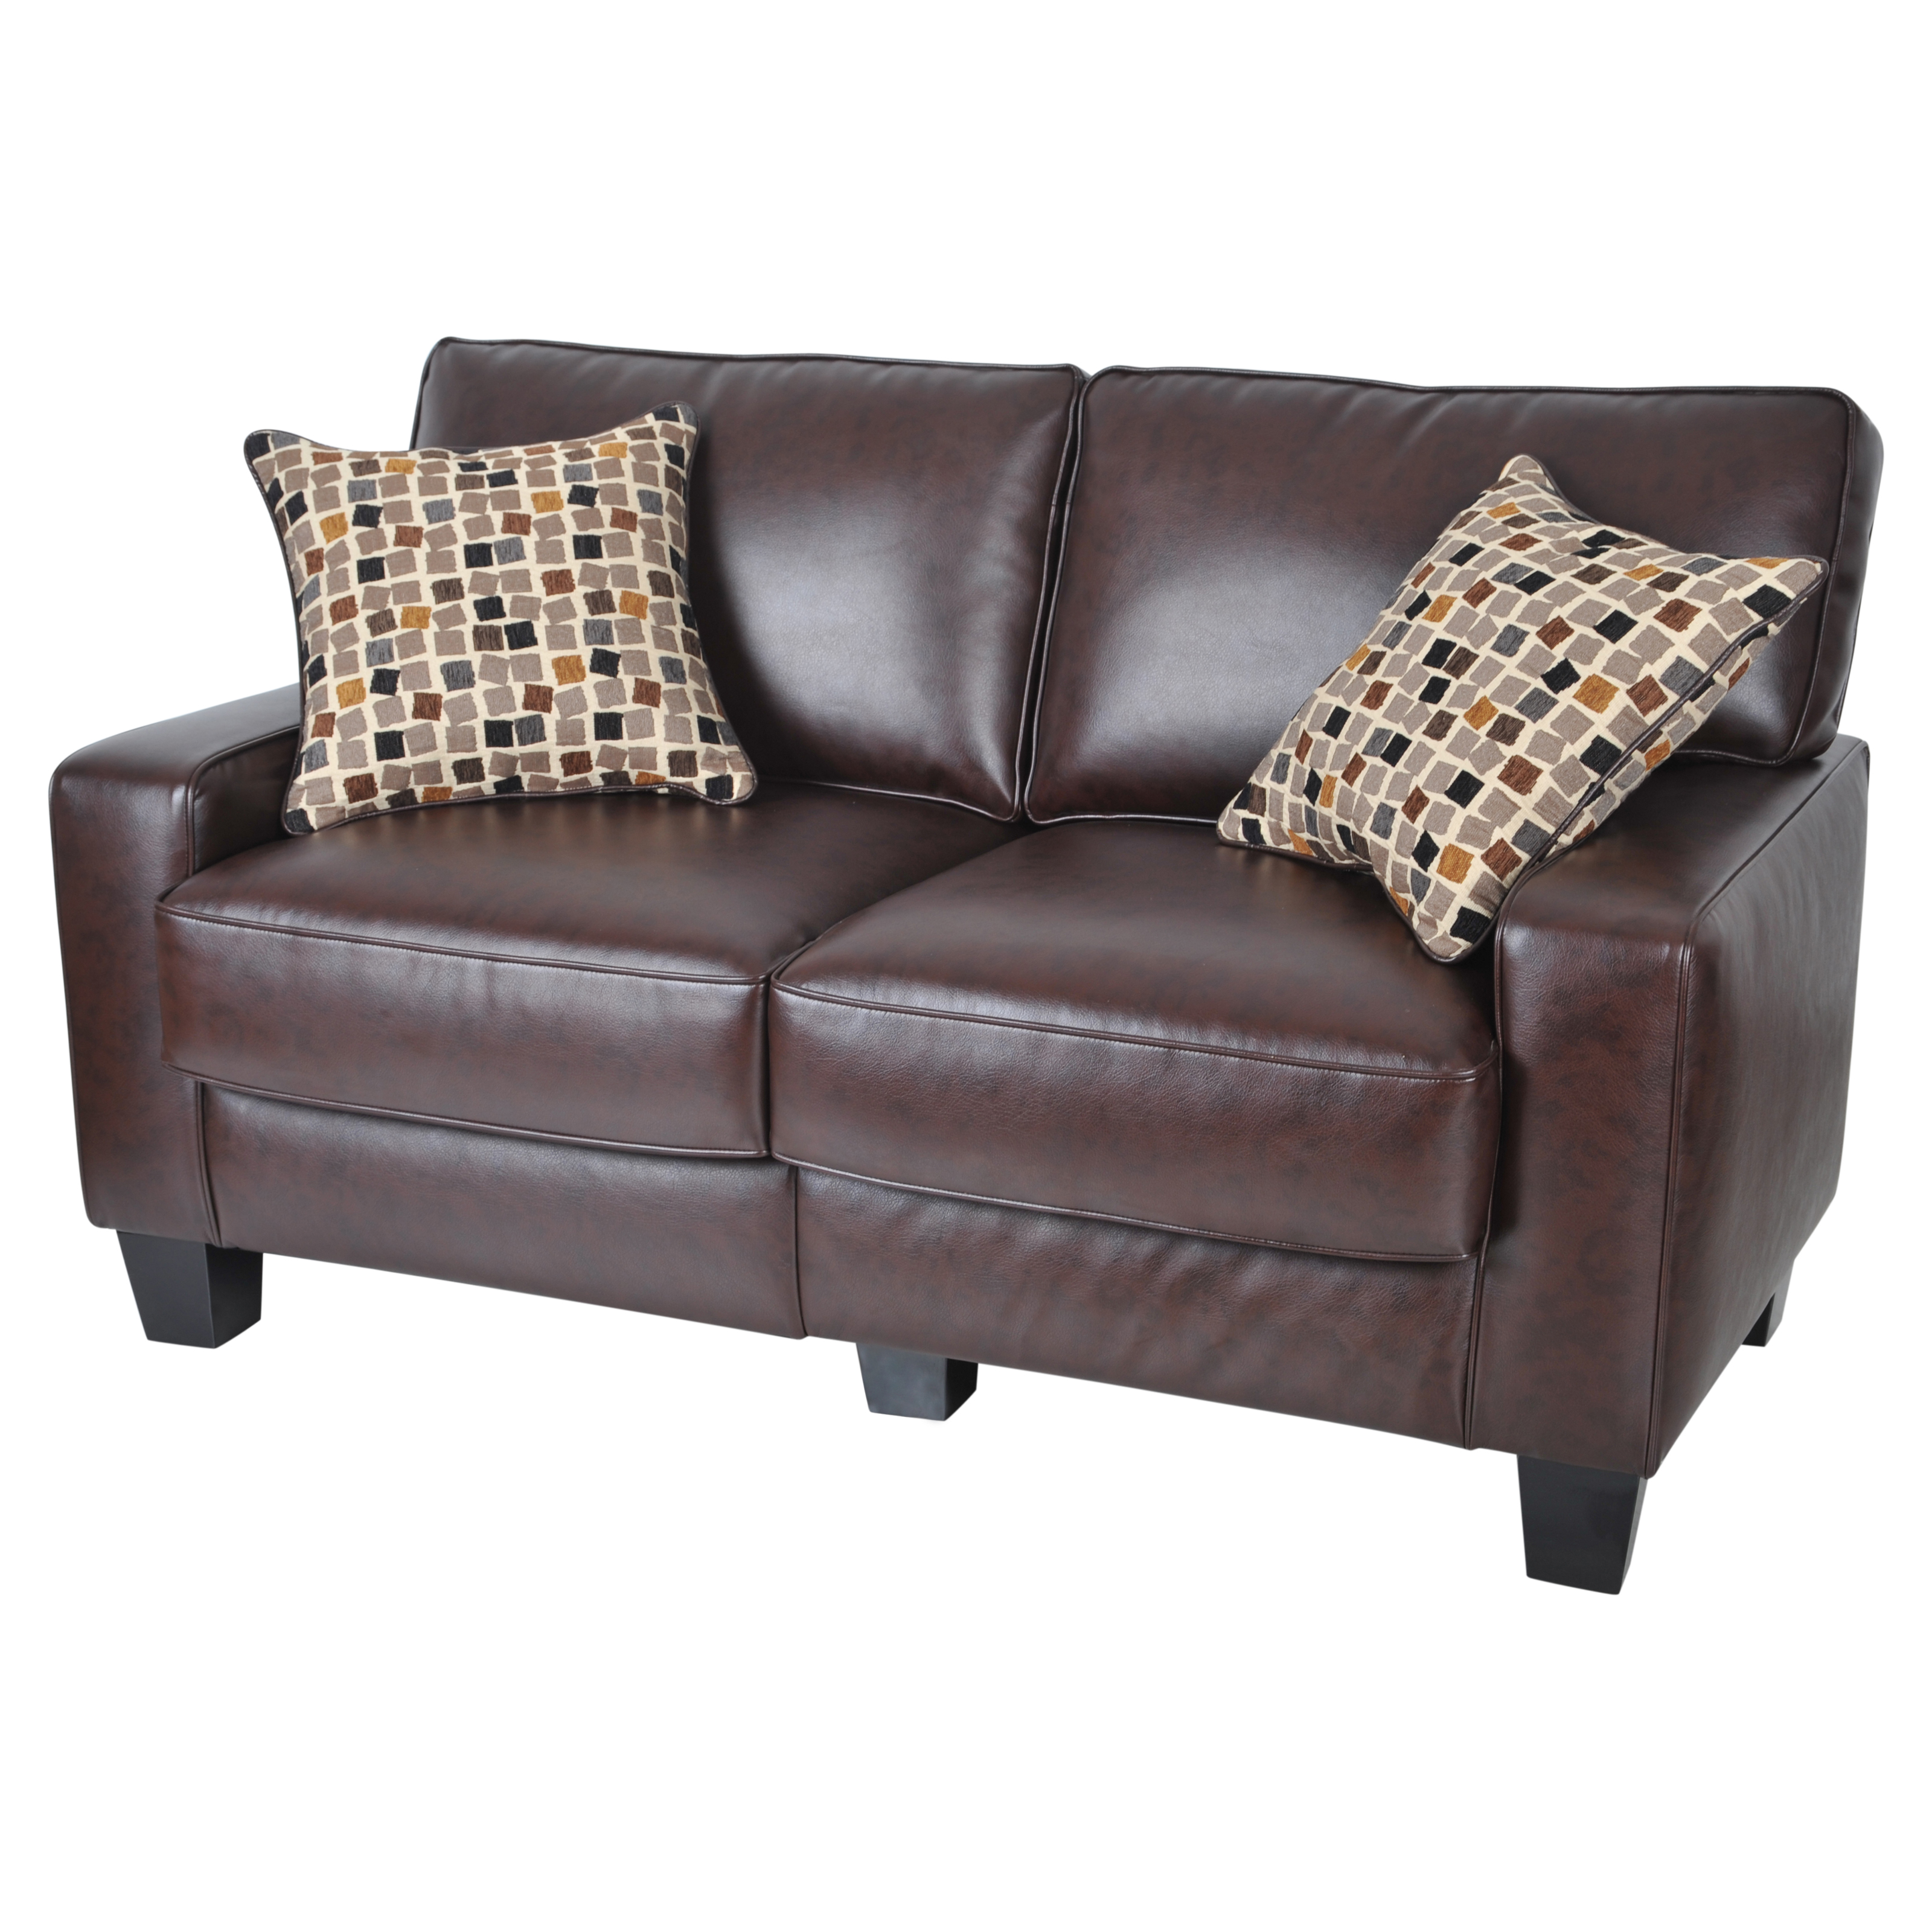 Leather Furniture Traveler Collection: Serta RTA Monaco Collection 60-in. Leather Sofa